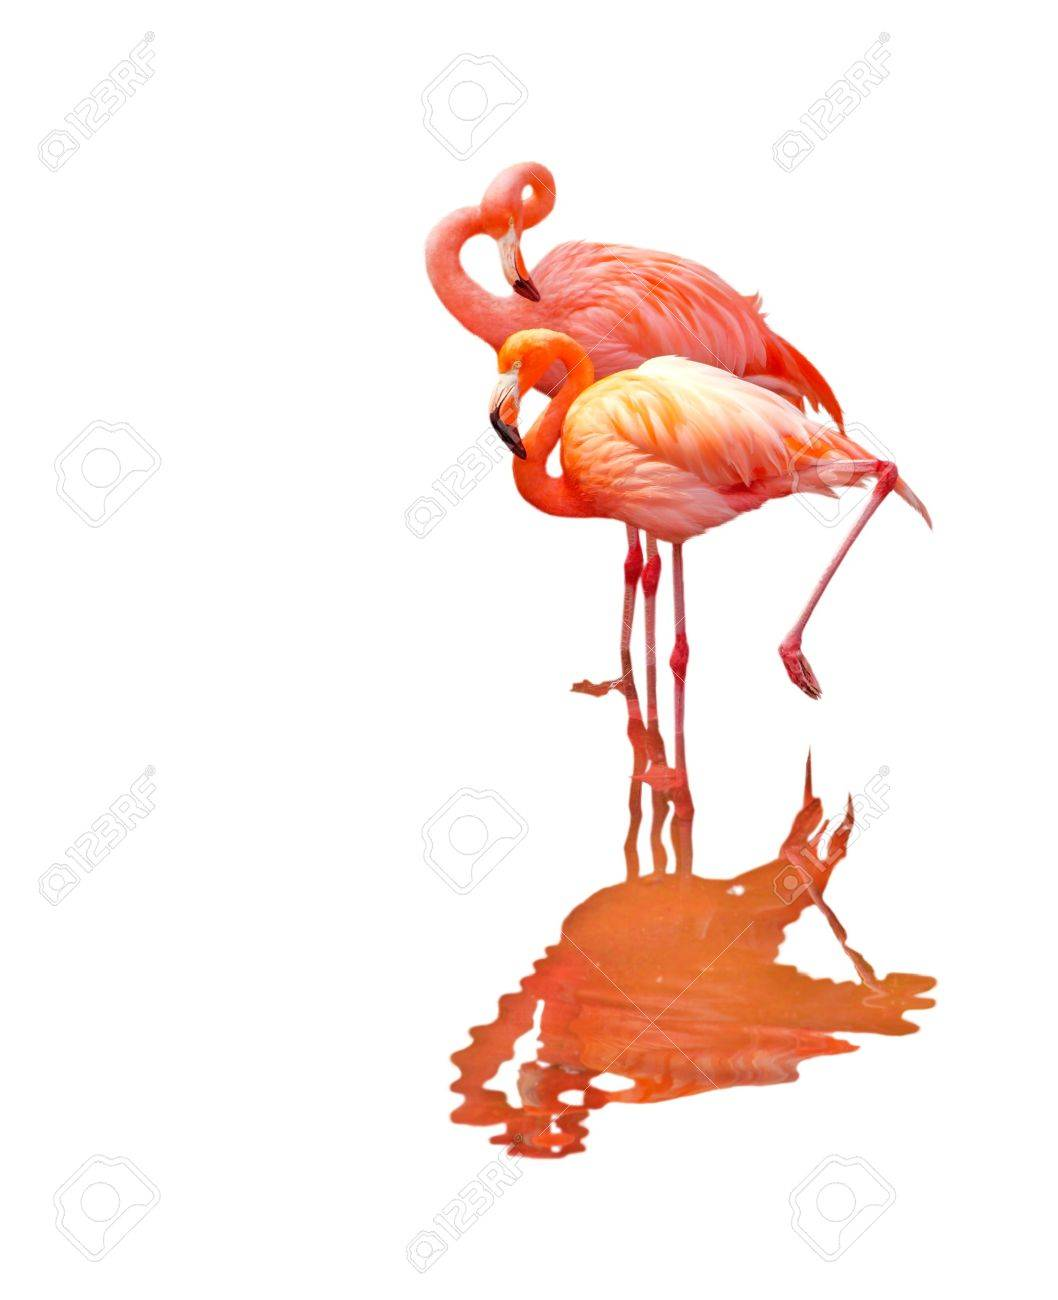 Two flamingo birds isolated on white background Stock Photo - 7921535